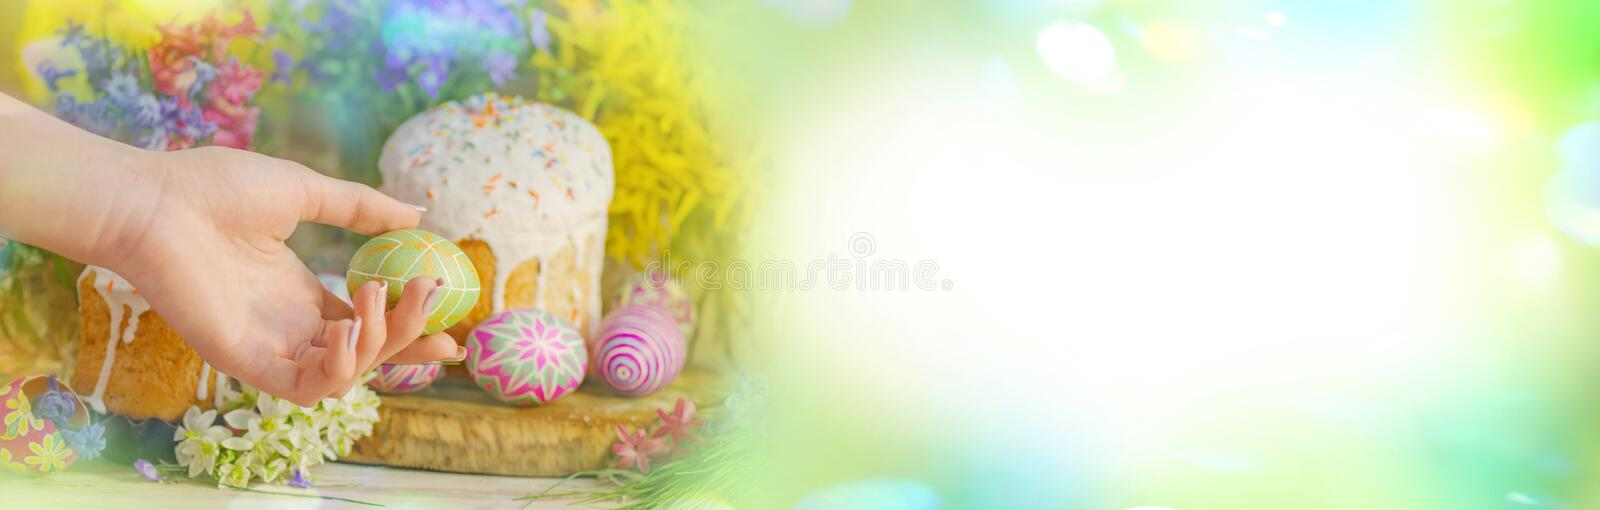 Easter spring concept. Table decorating for Easter holiday. Easter eggs on meadow with flowers royalty free stock image